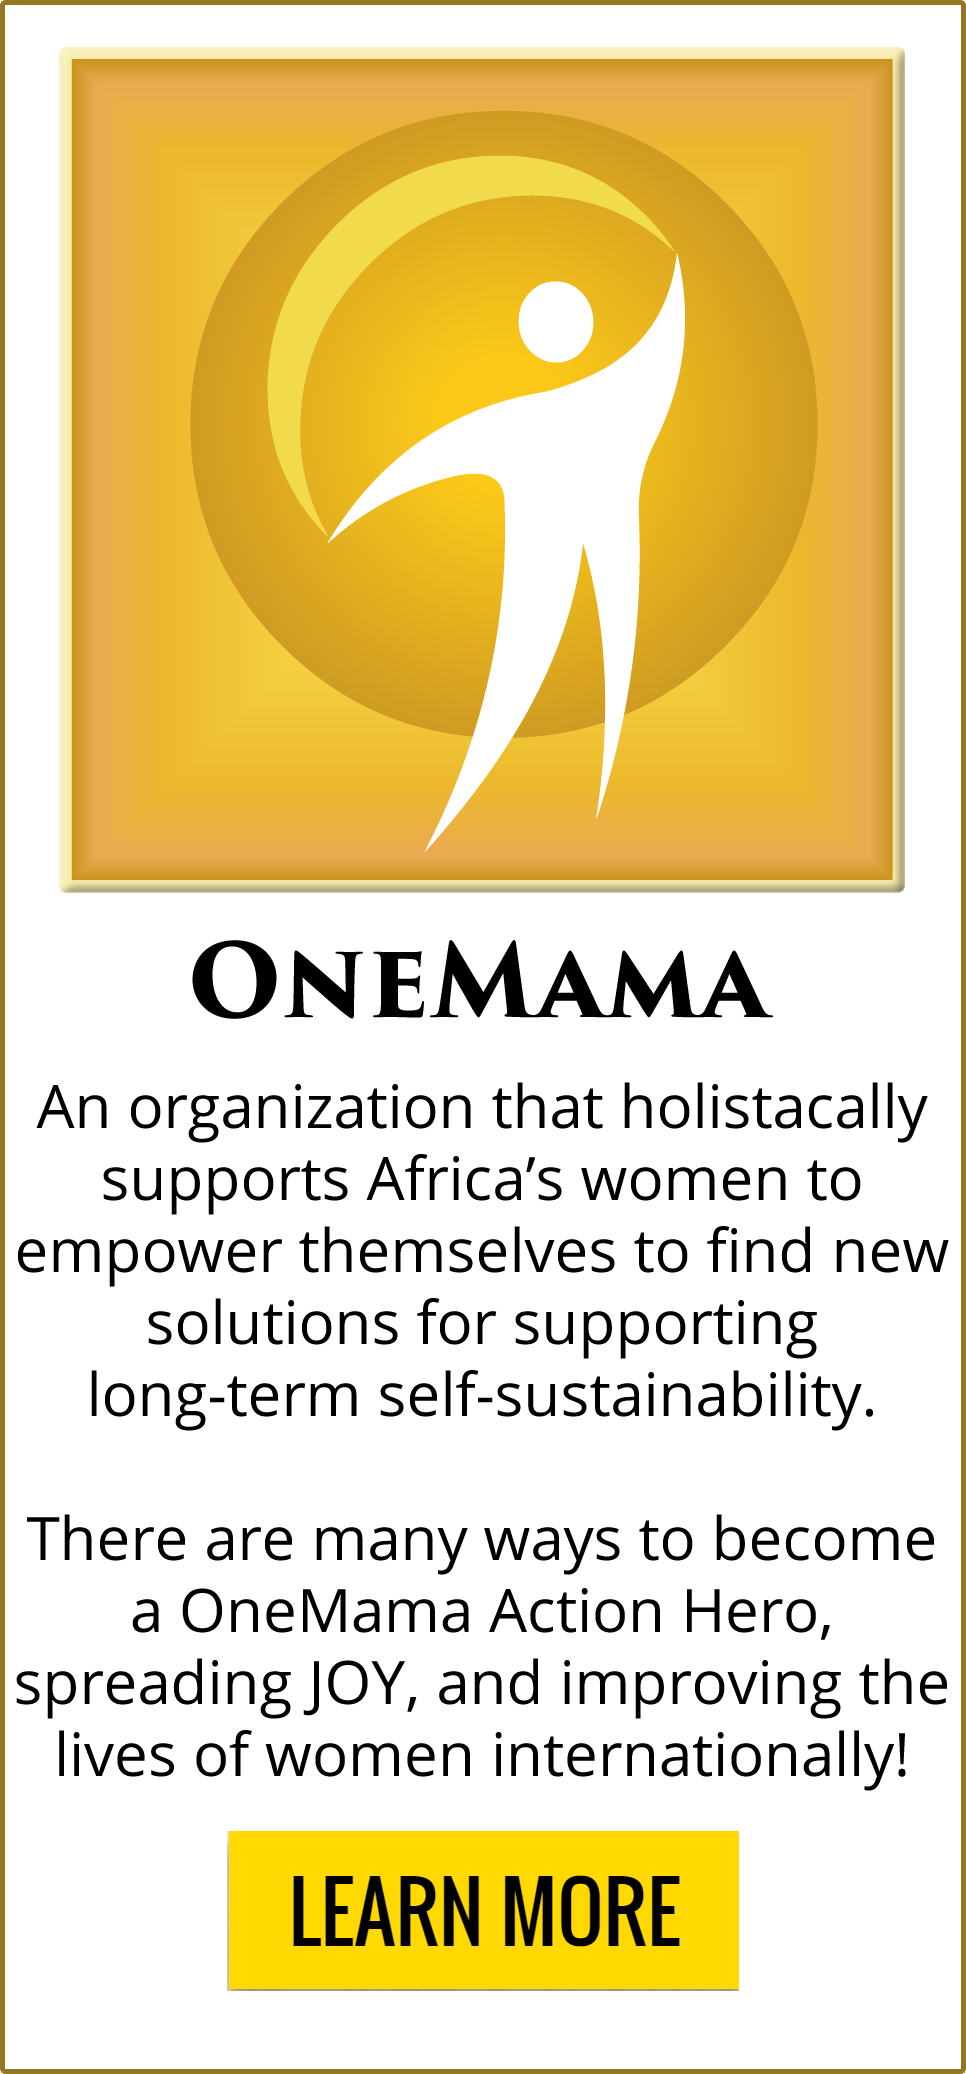 OneMama is a charity fighting for the JOY of others!